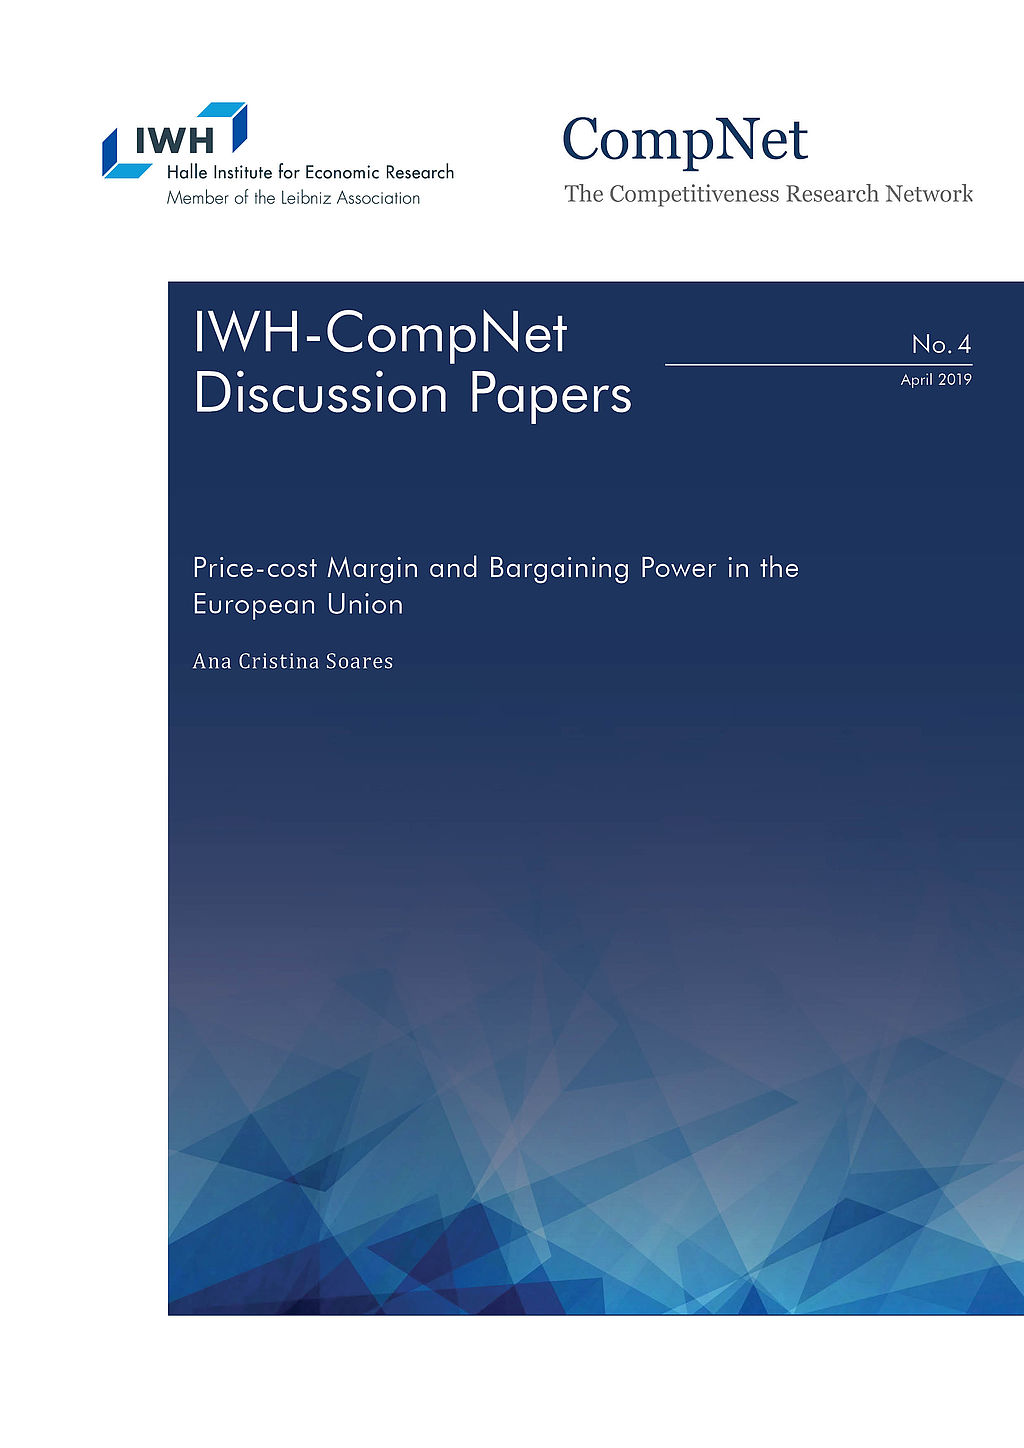 cover_IWH-CompNet-DP_04_2019.jpg